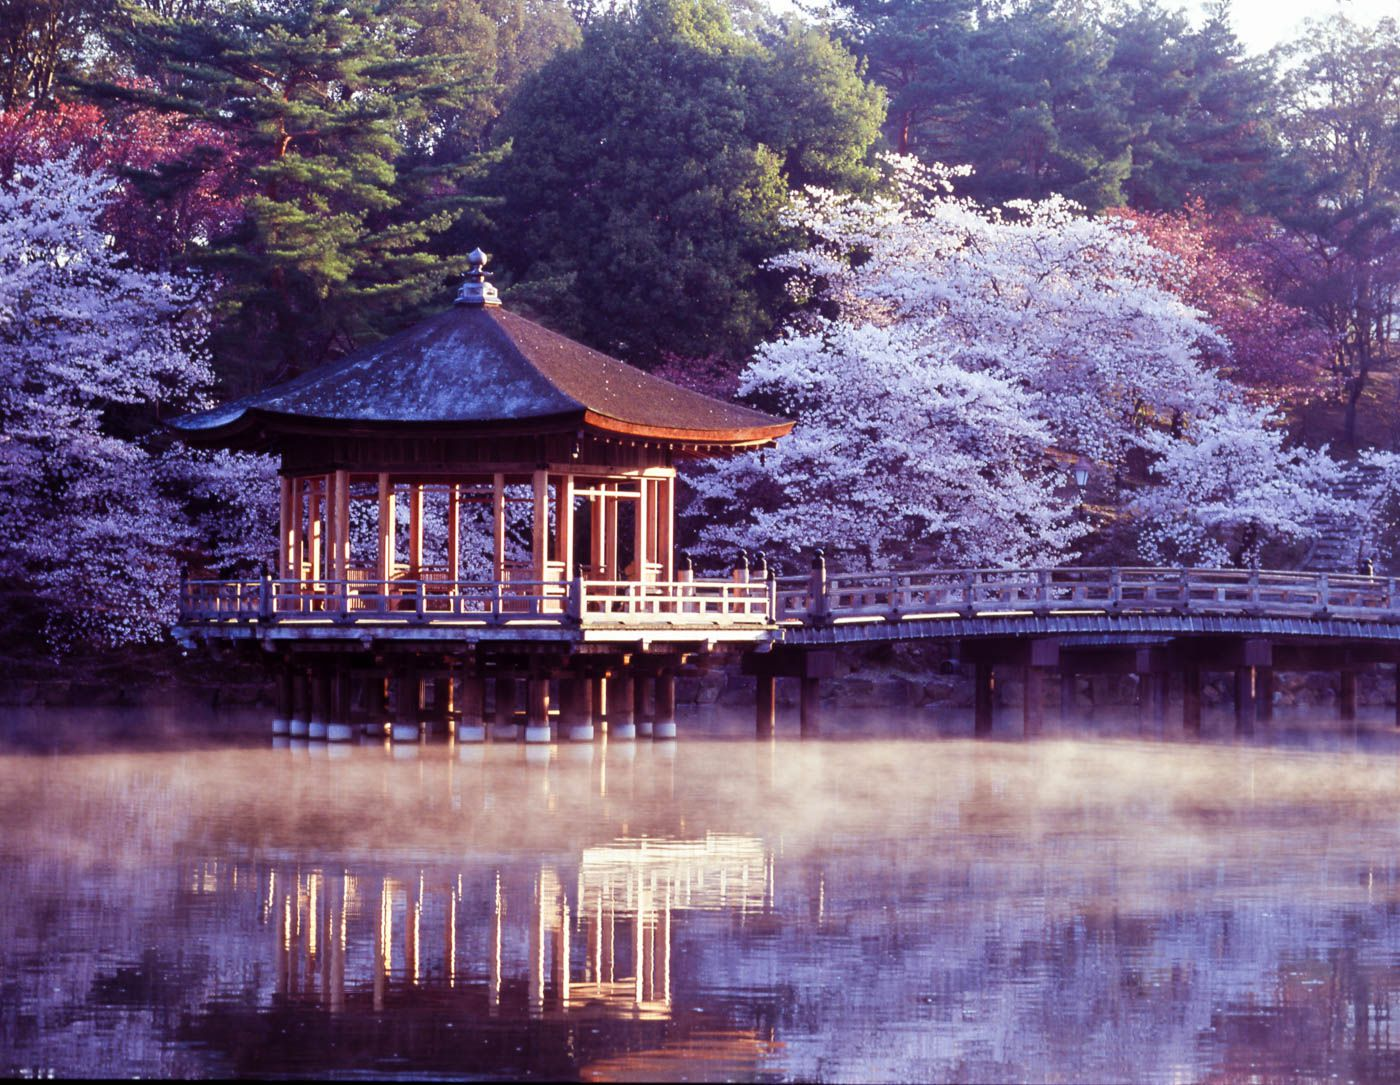 Nara Travel Costs Amp Prices Buddhist Temples Downtown Sushi Budgetyourtrip Com